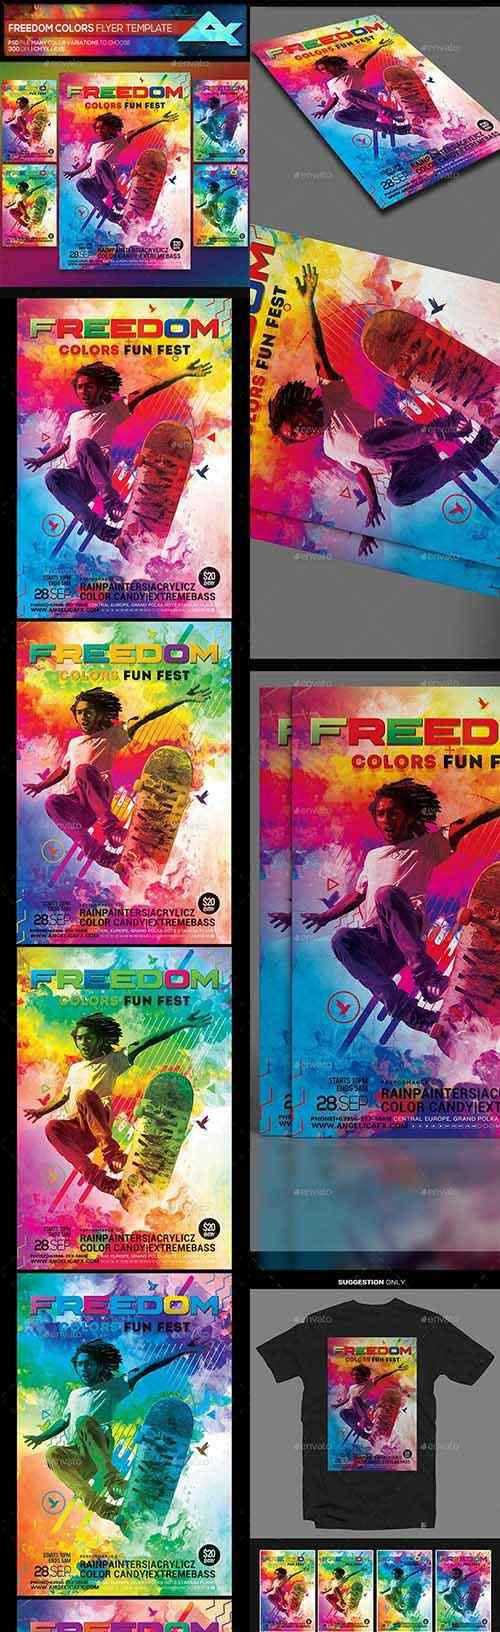 Freedom Colors Fun Fest Photoshop Flyer Template 22356183